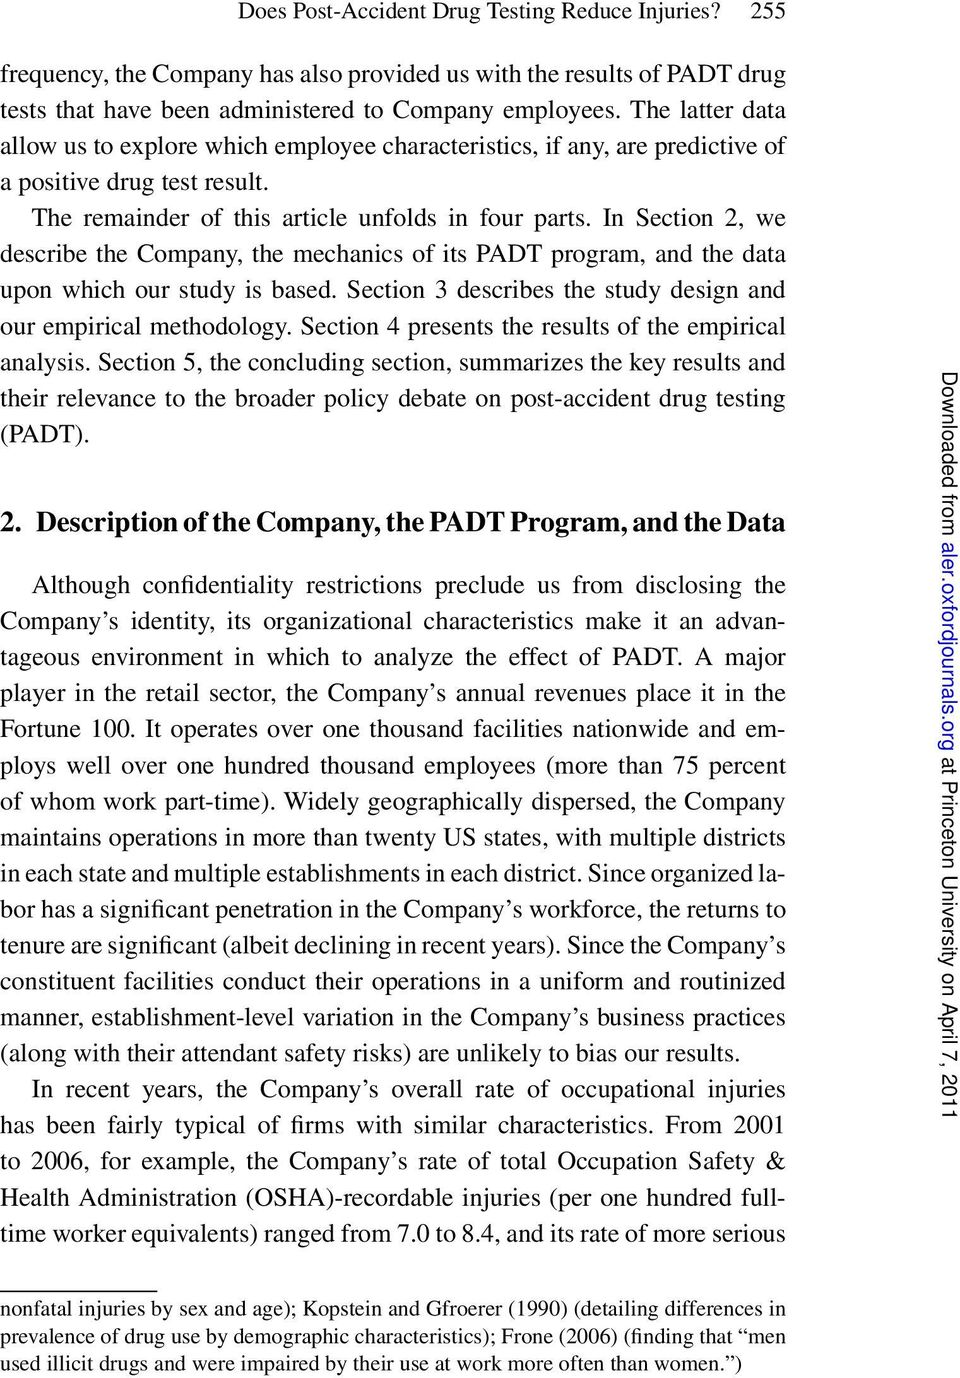 In Section 2, we describe the Company, the mechanics of its PADT program, and the data upon which our study is based. Section 3 describes the study design and our empirical methodology.